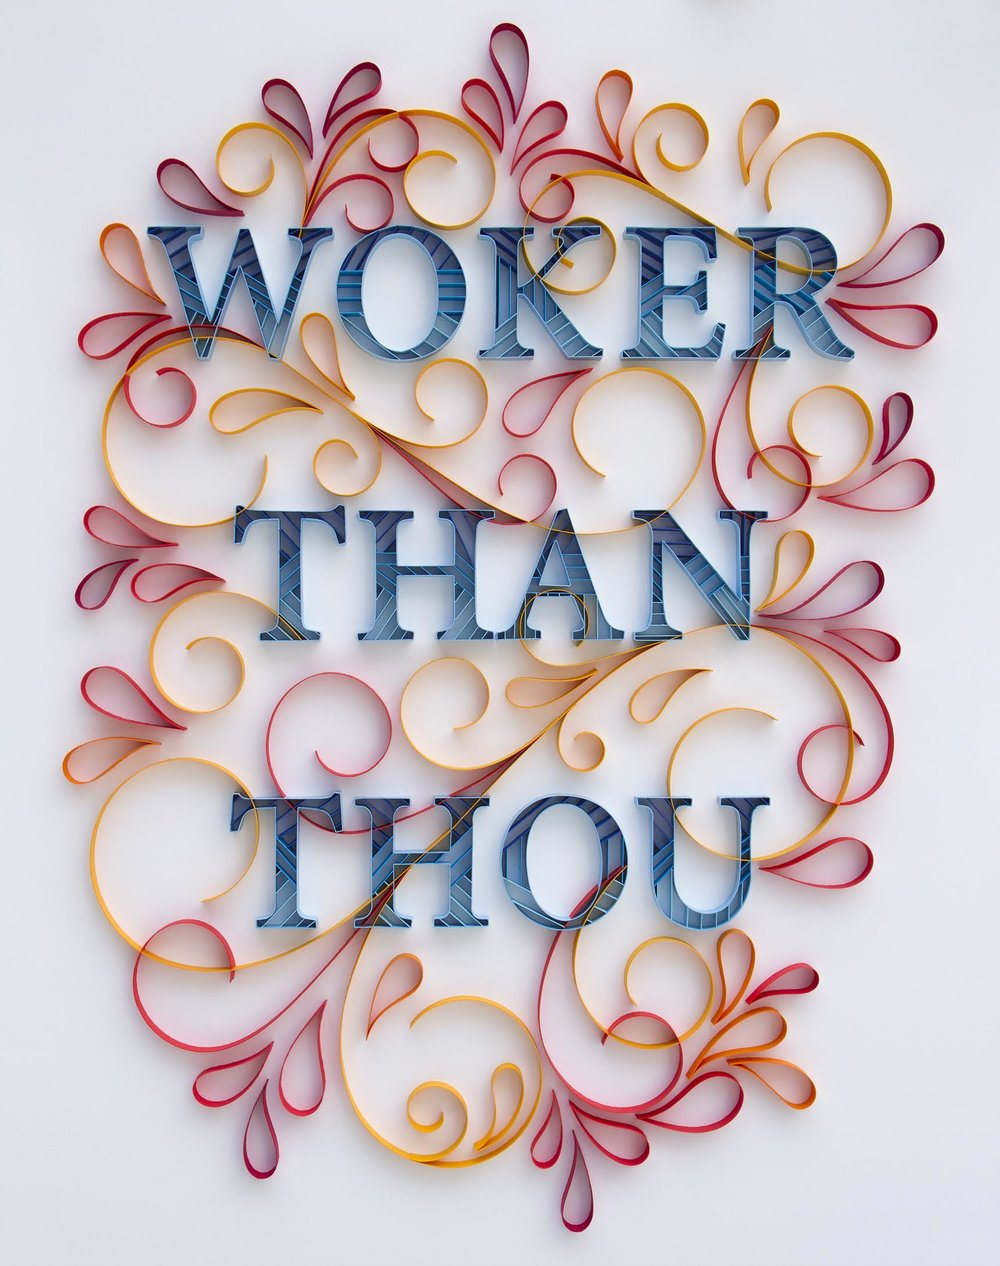 "Woker Than Thou 24"" x 30"" by Pete Ho"